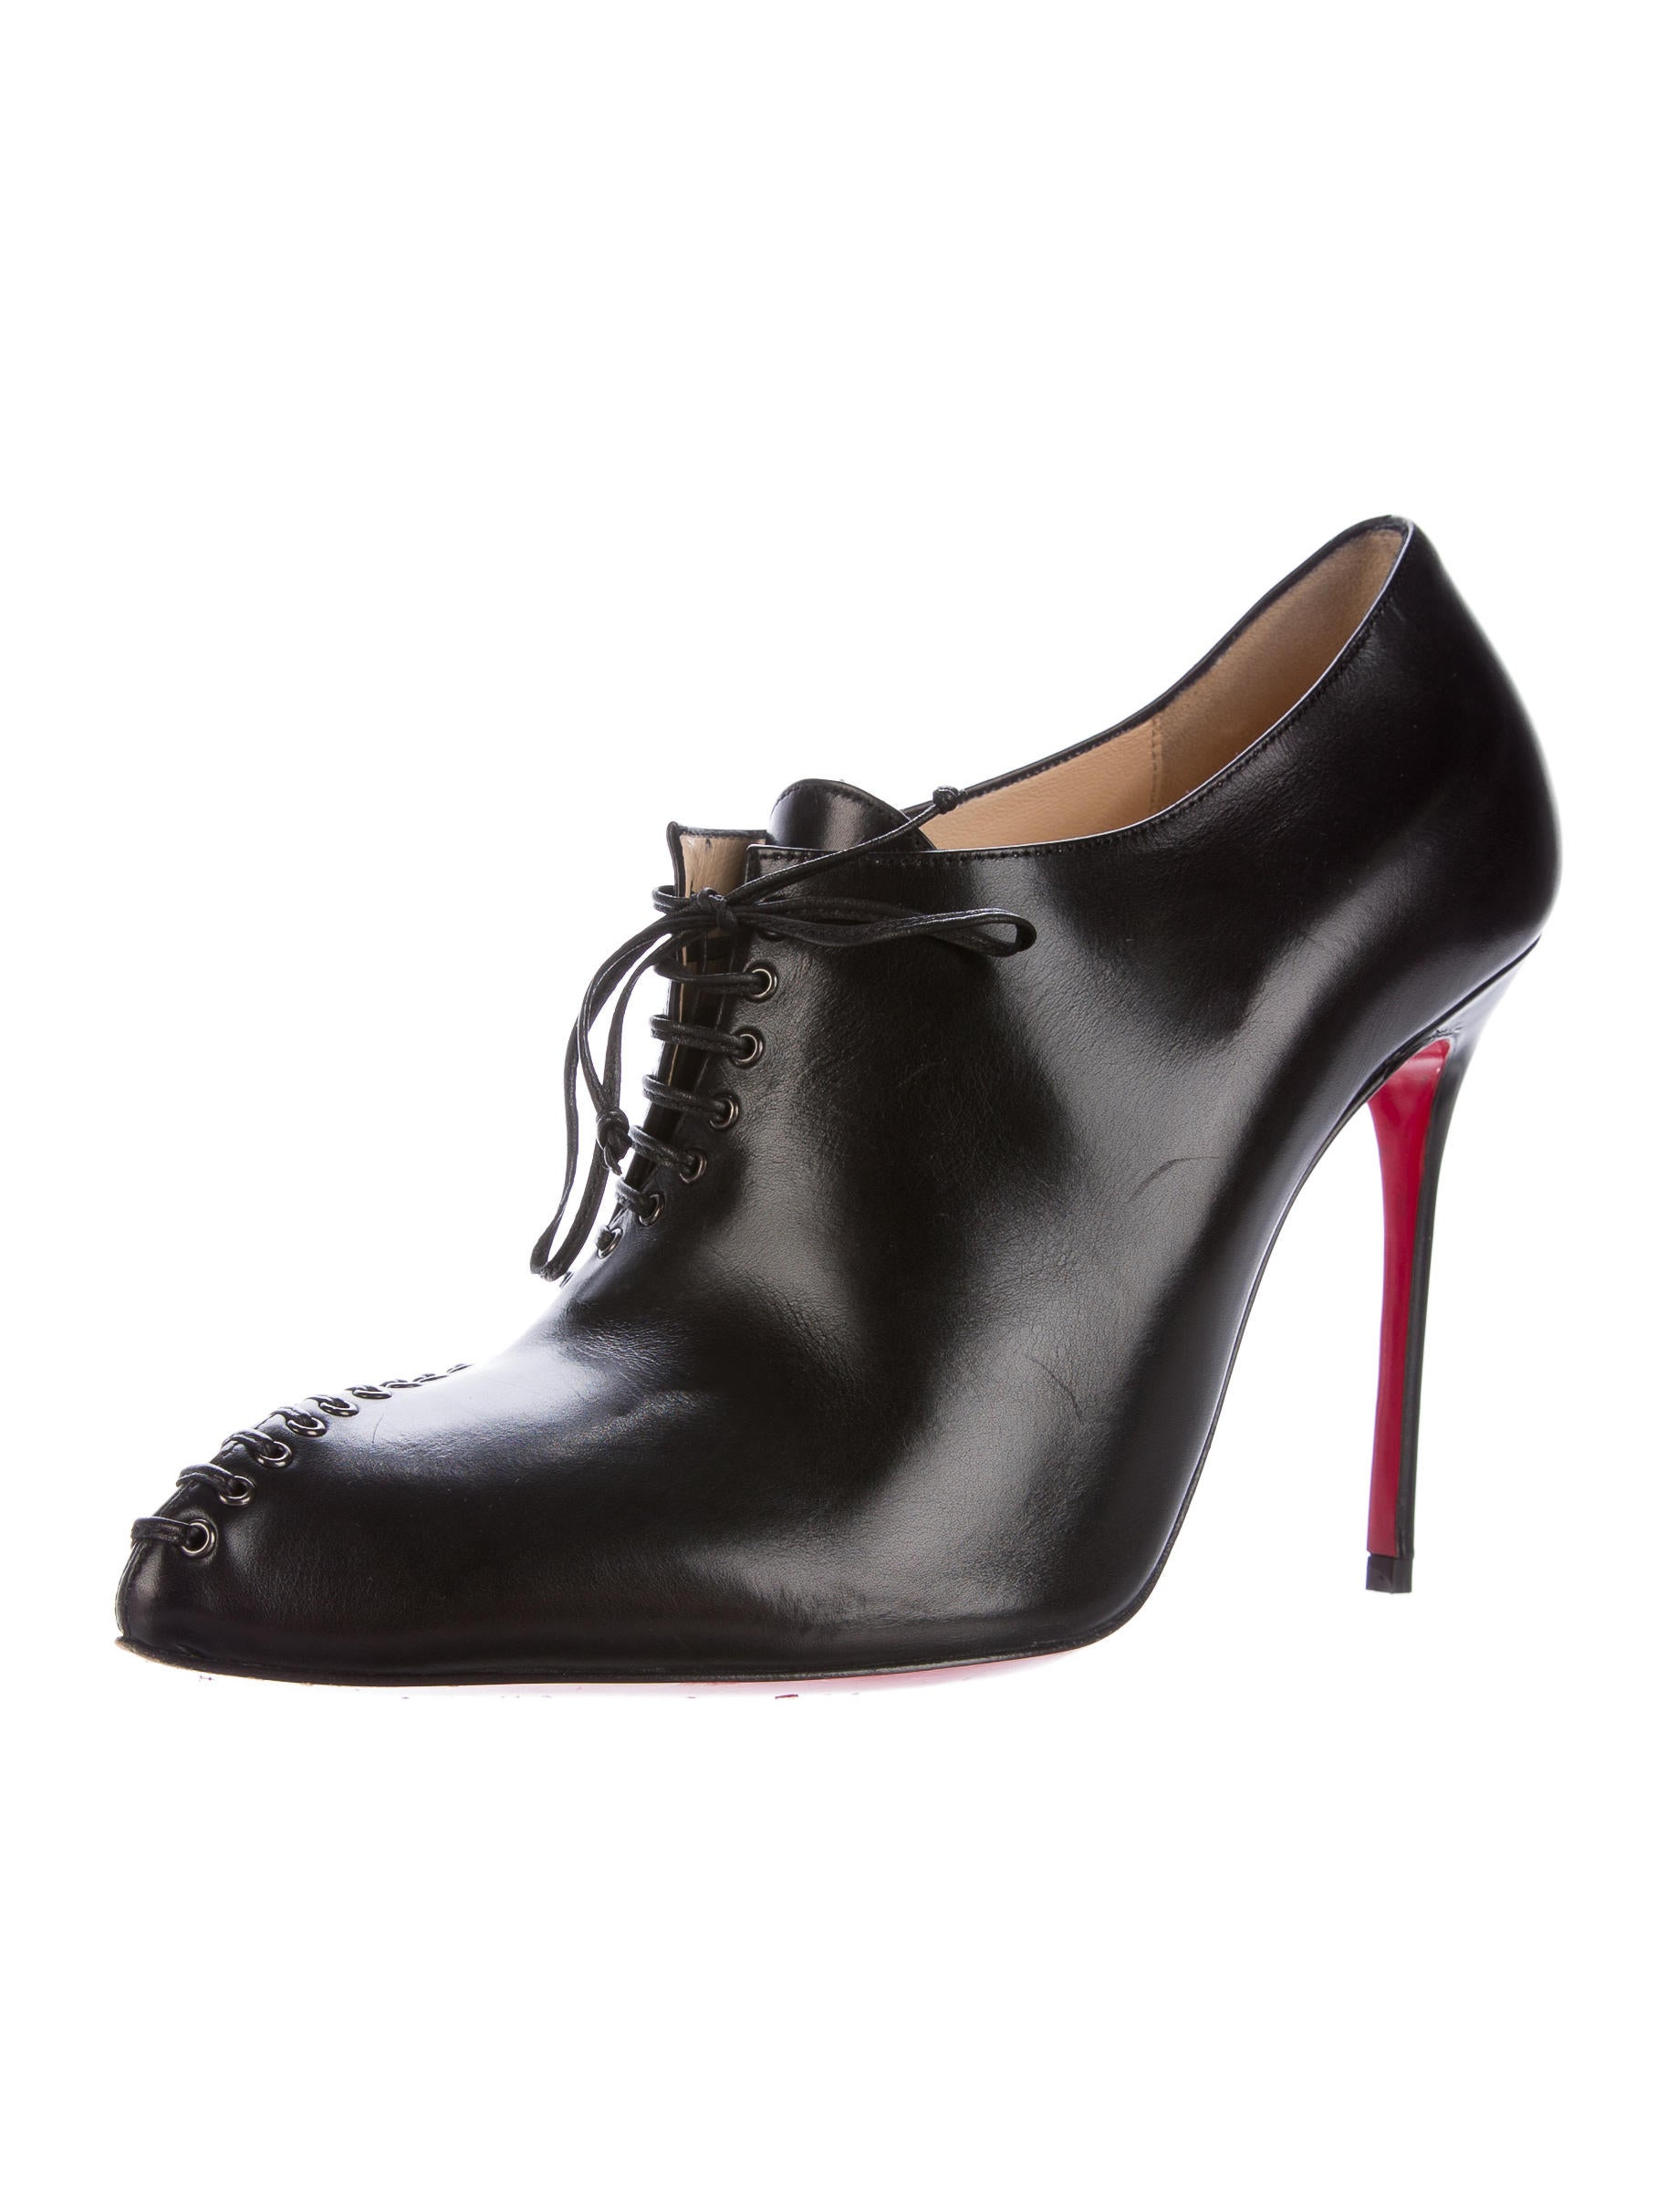 christian louboutin leather lace up ankle boots shoes